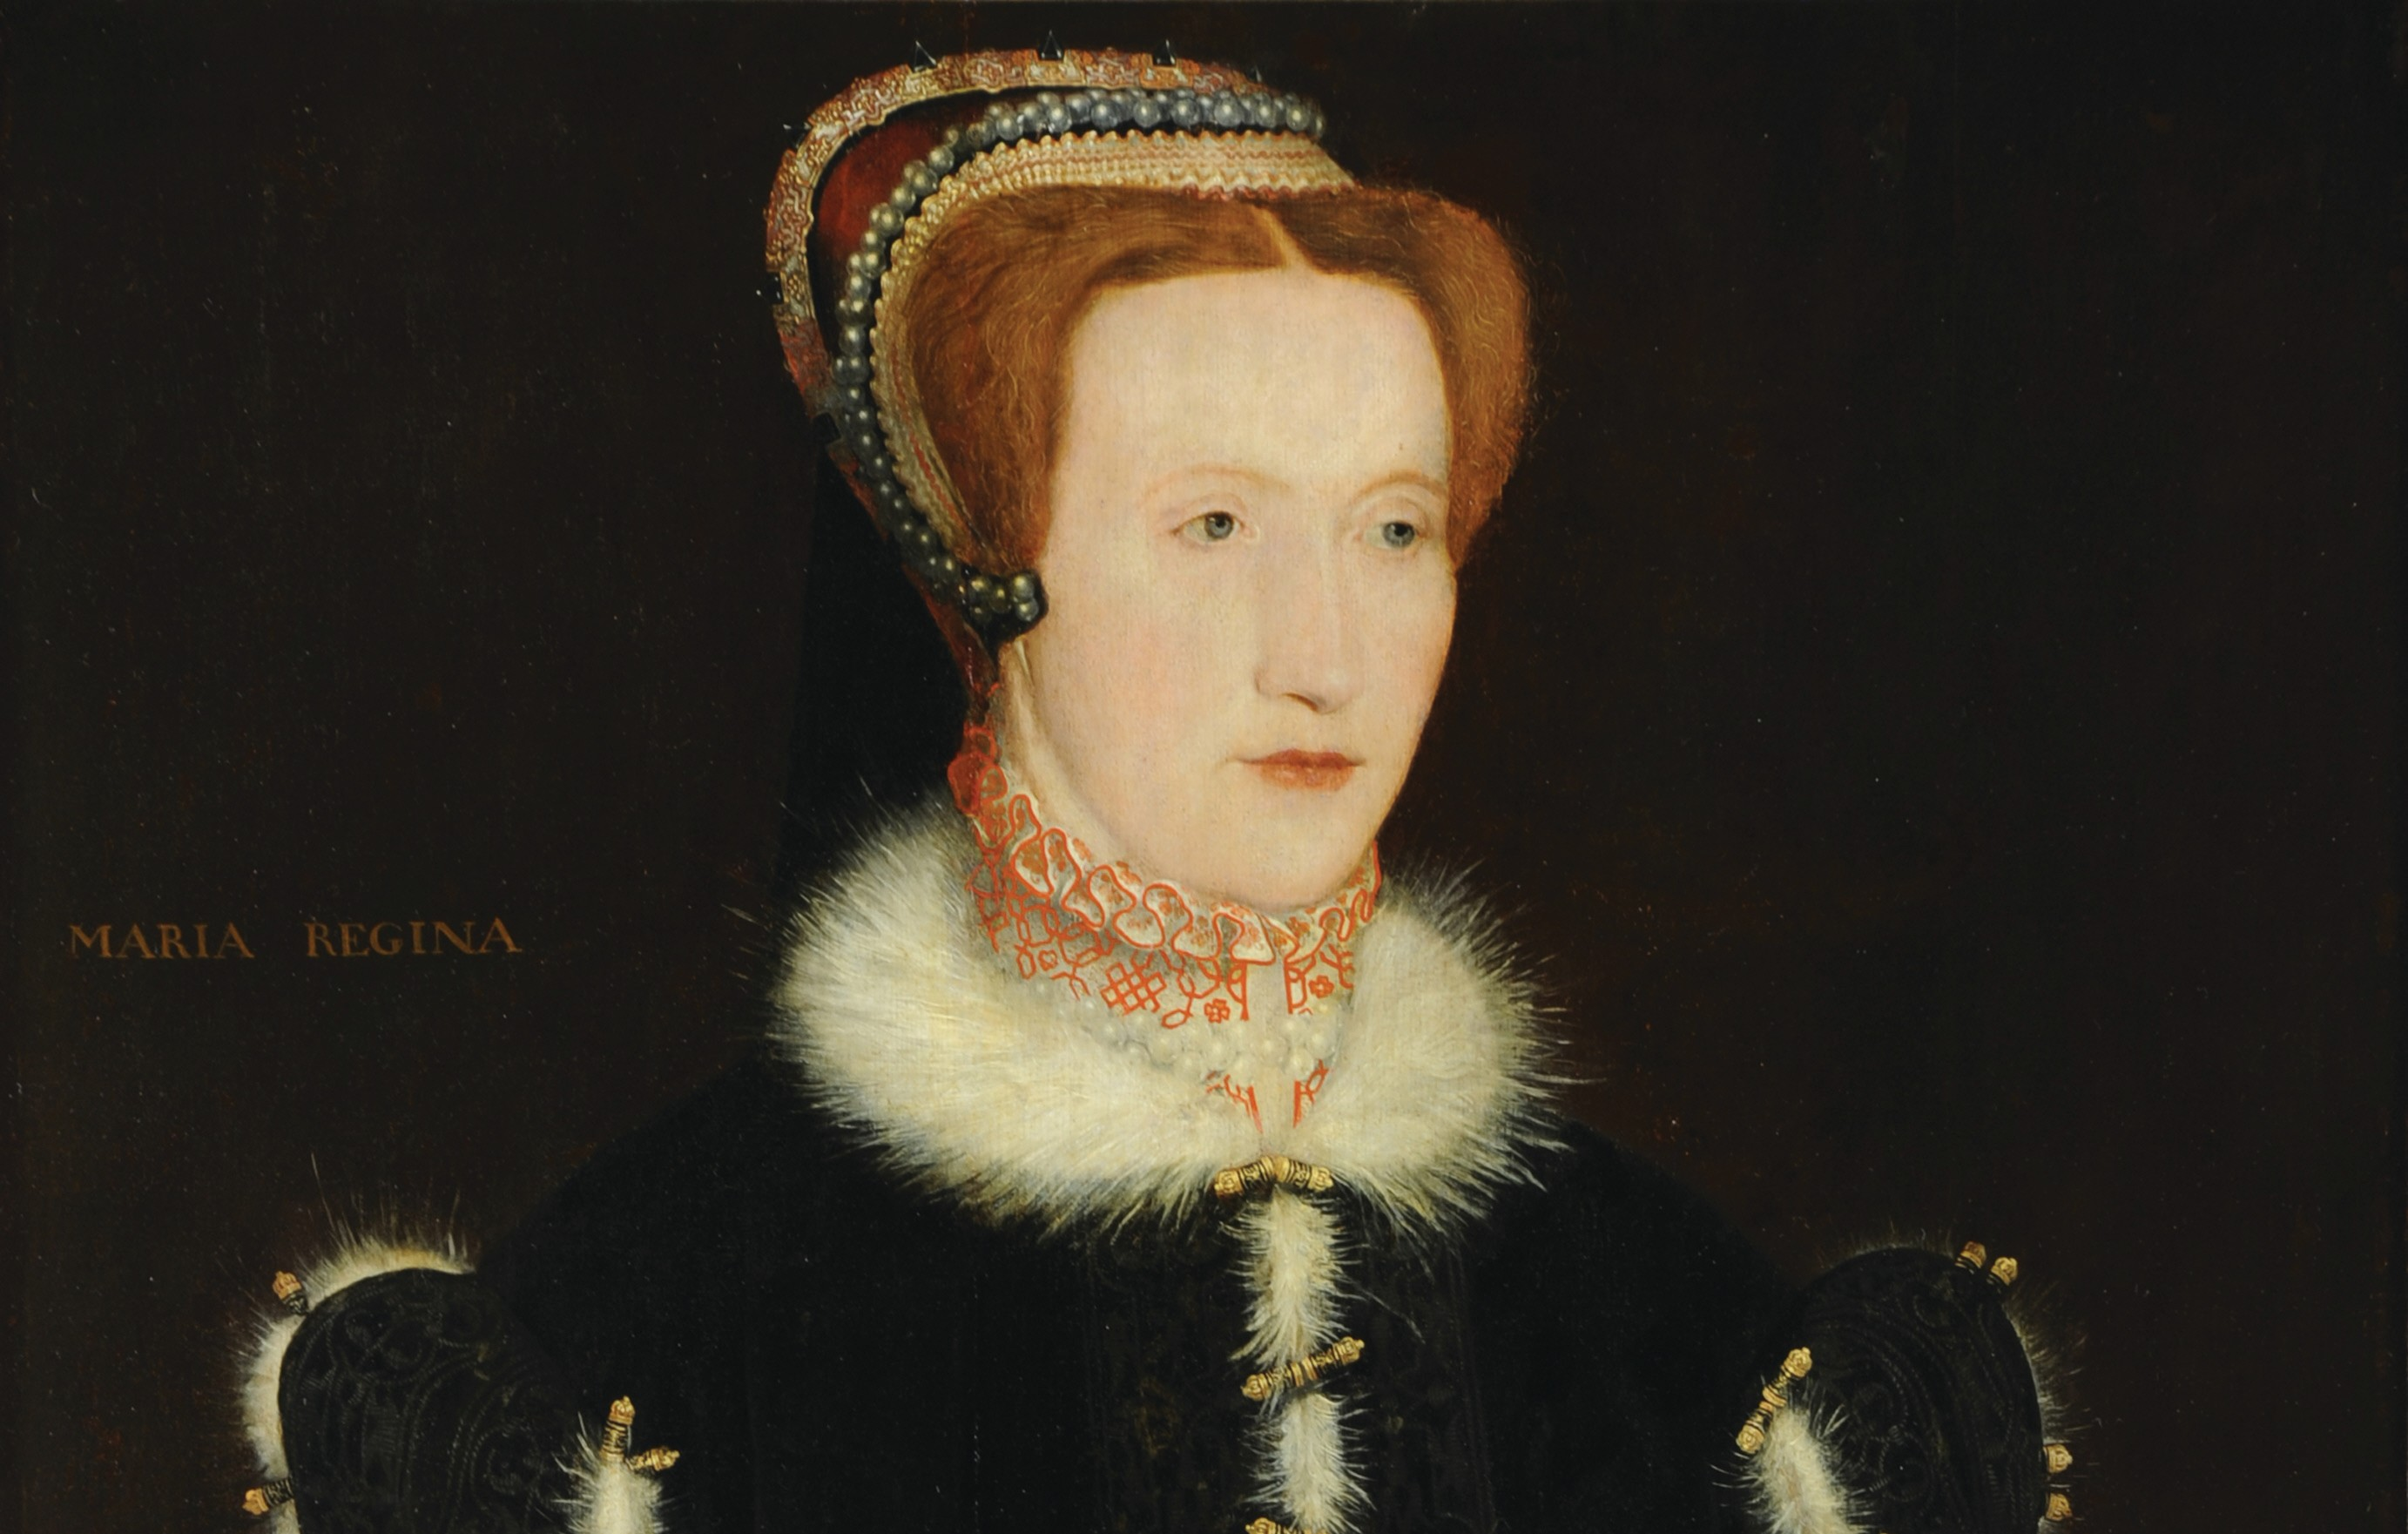 A 16th-century portrait of Bess of Hardwick. Bess's talent, ambition and eye for a well-connected husband elevated her to dizzying levels of wealth and power in Tudor England. (Photo by Bridgeman Art Library)